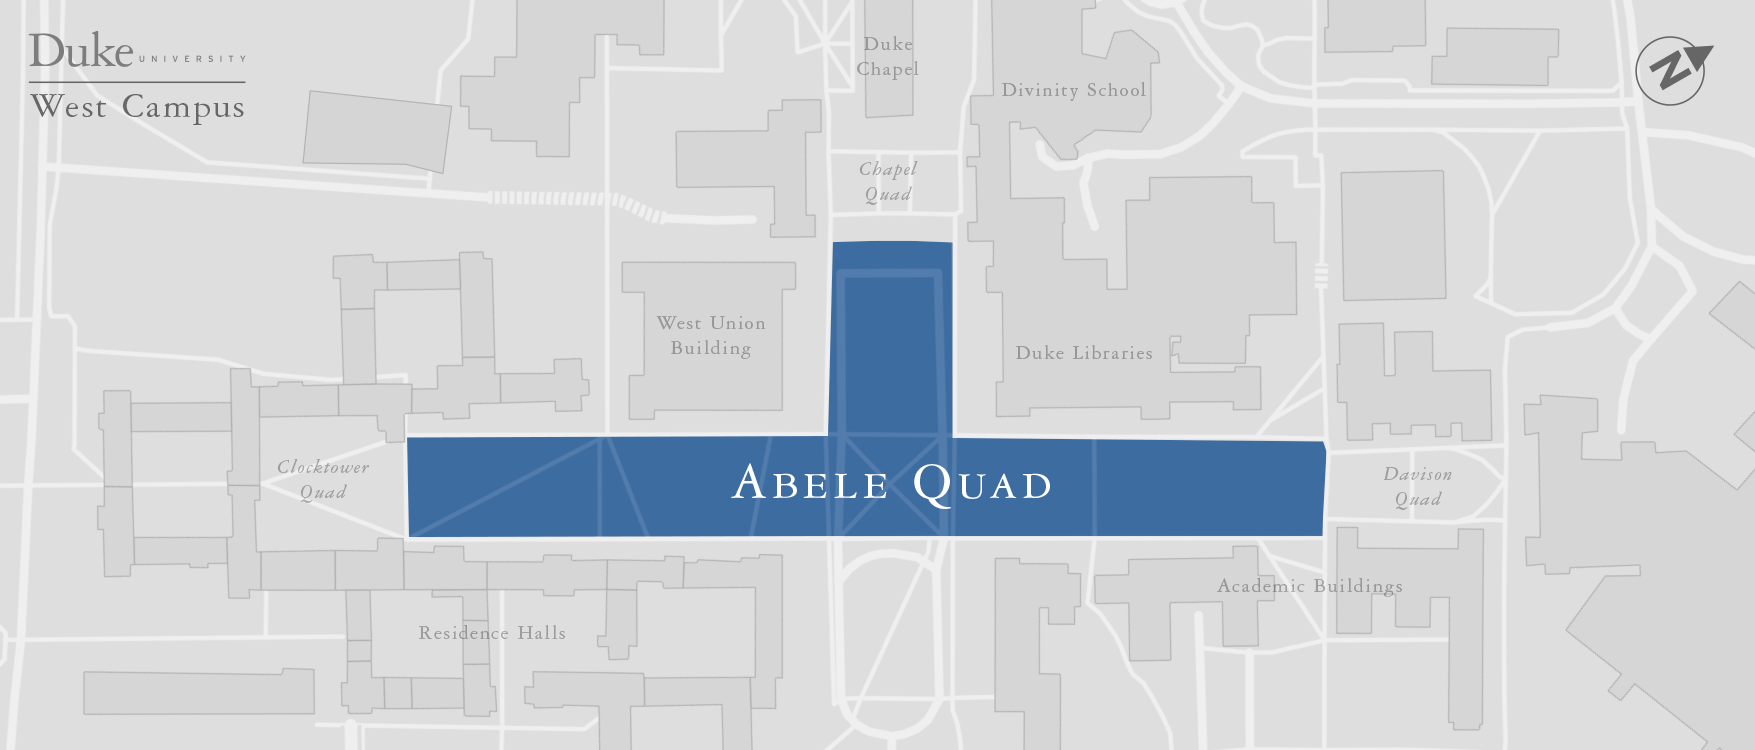 A map of the newly named Abele Quad on Duke University's West Campus